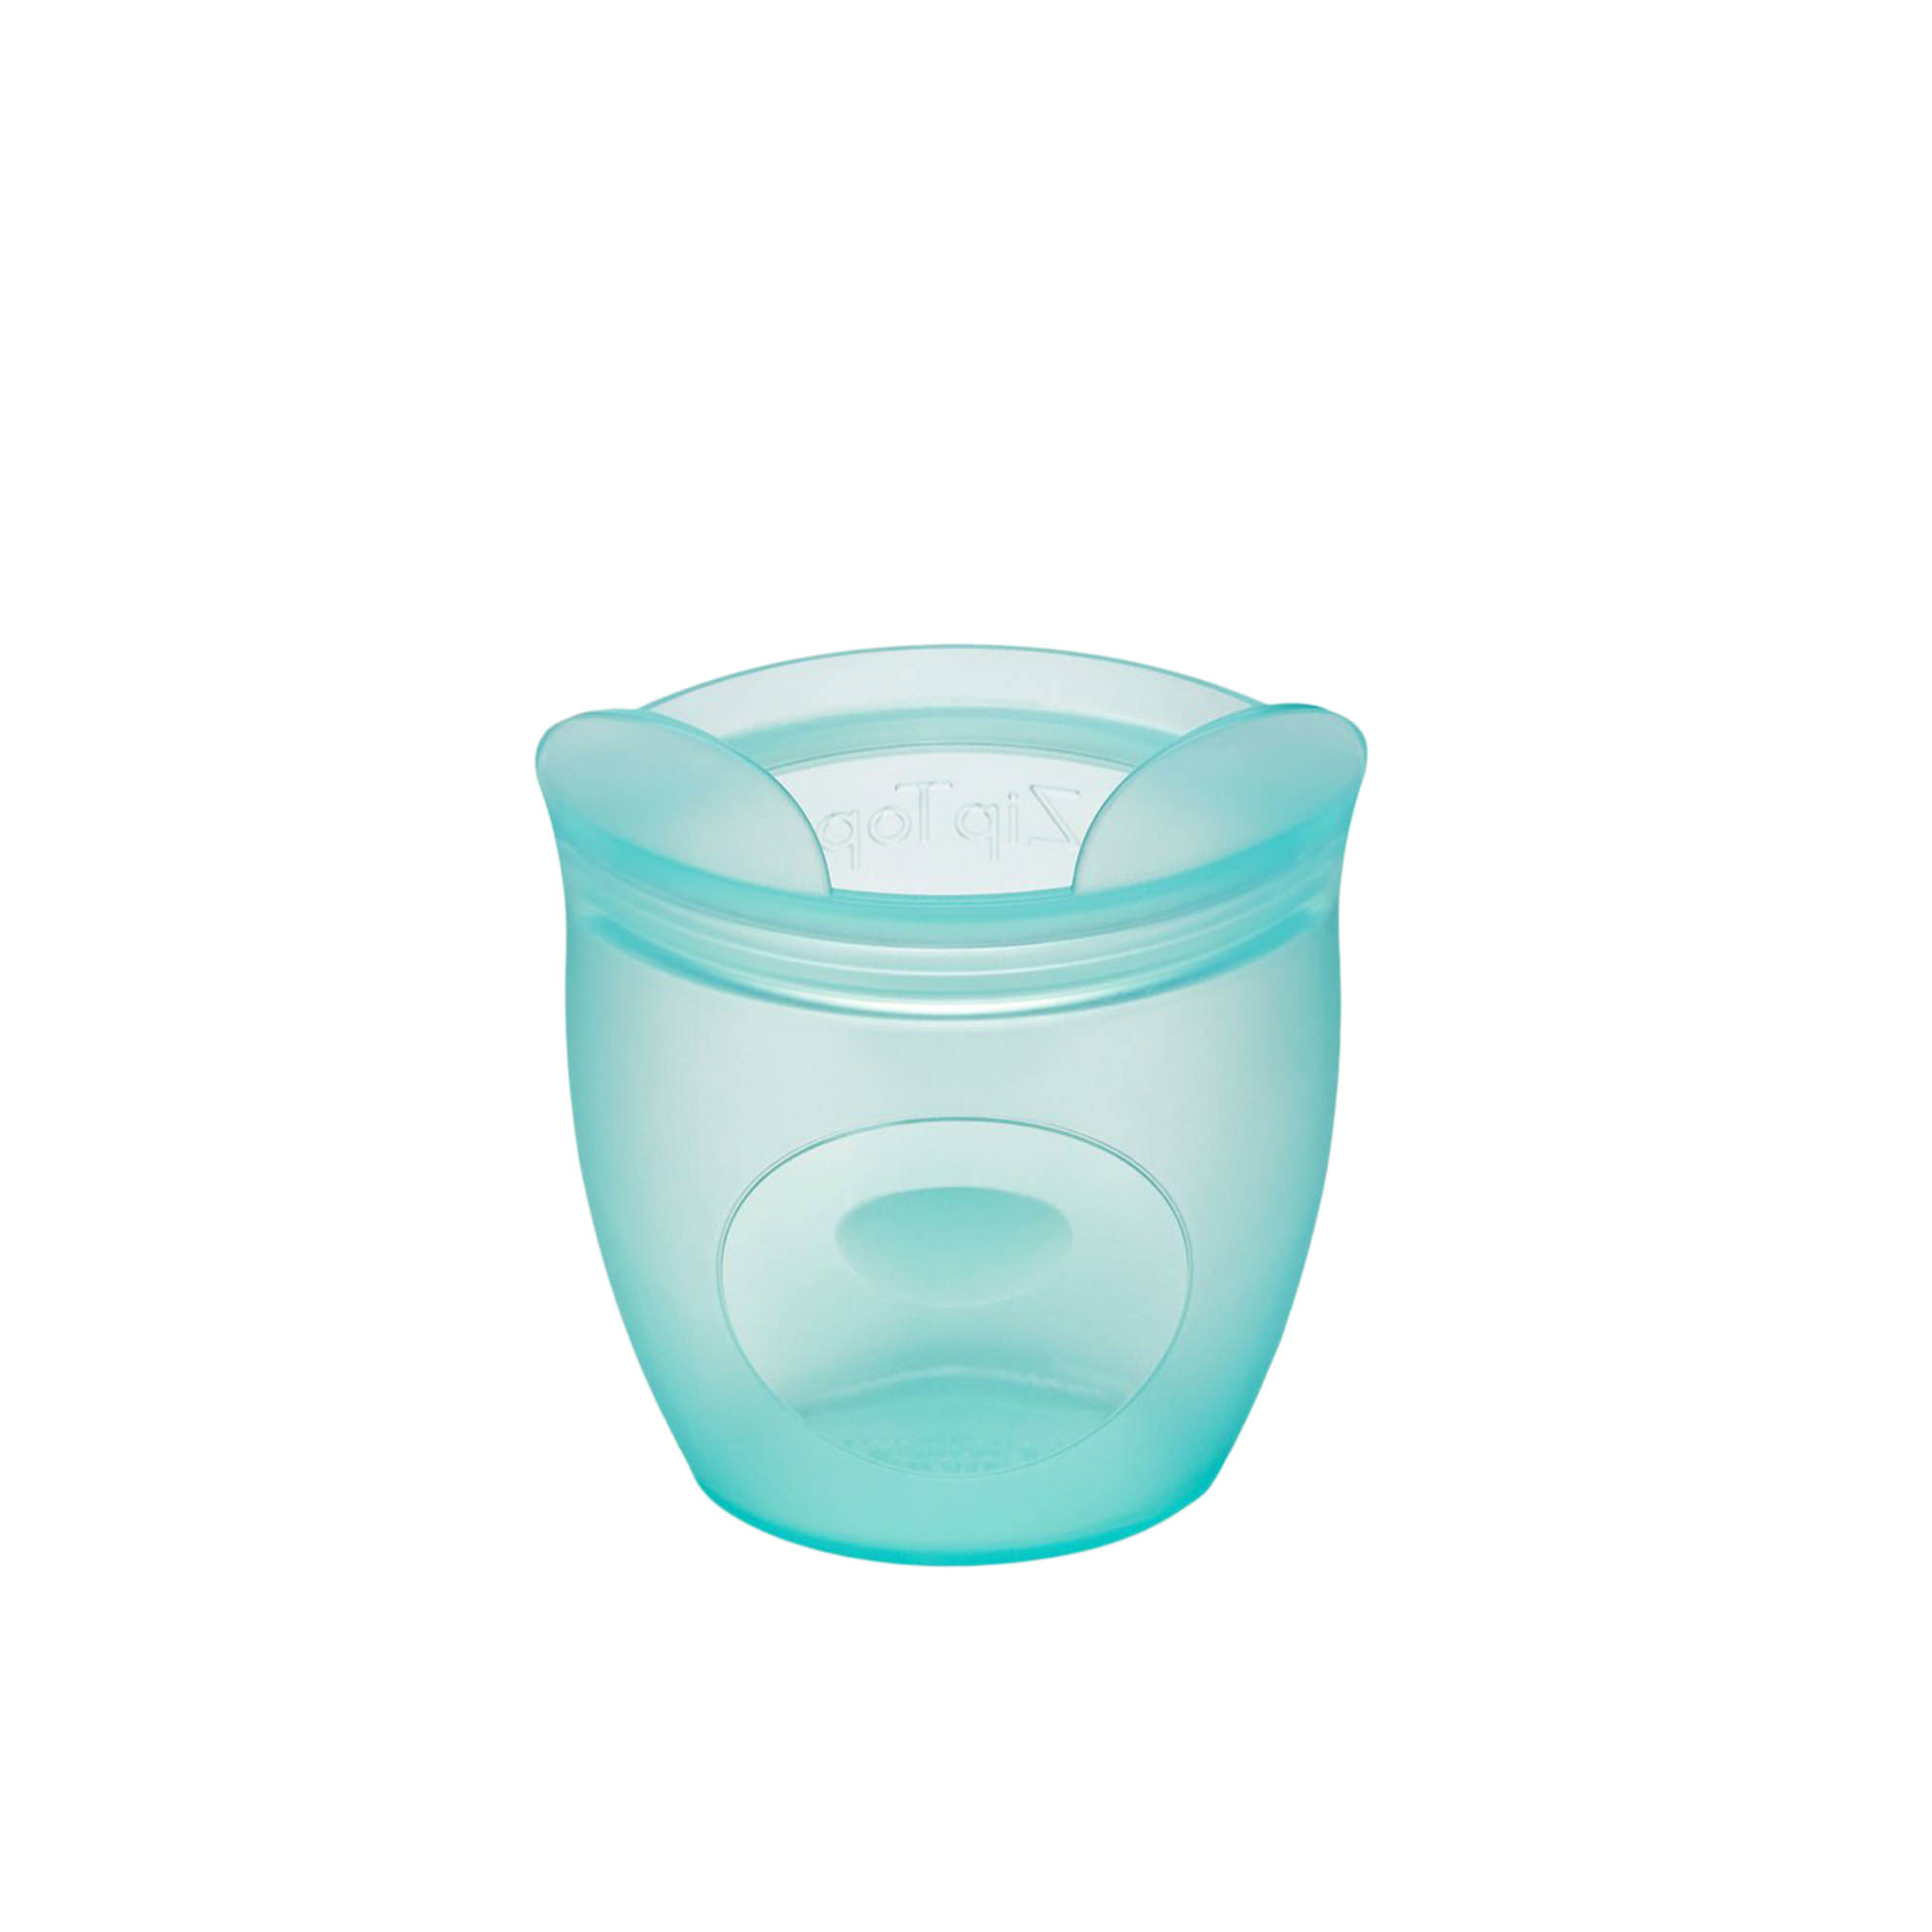 Zip Top Platinum Silicone Baby Snack Container 118ml Bear